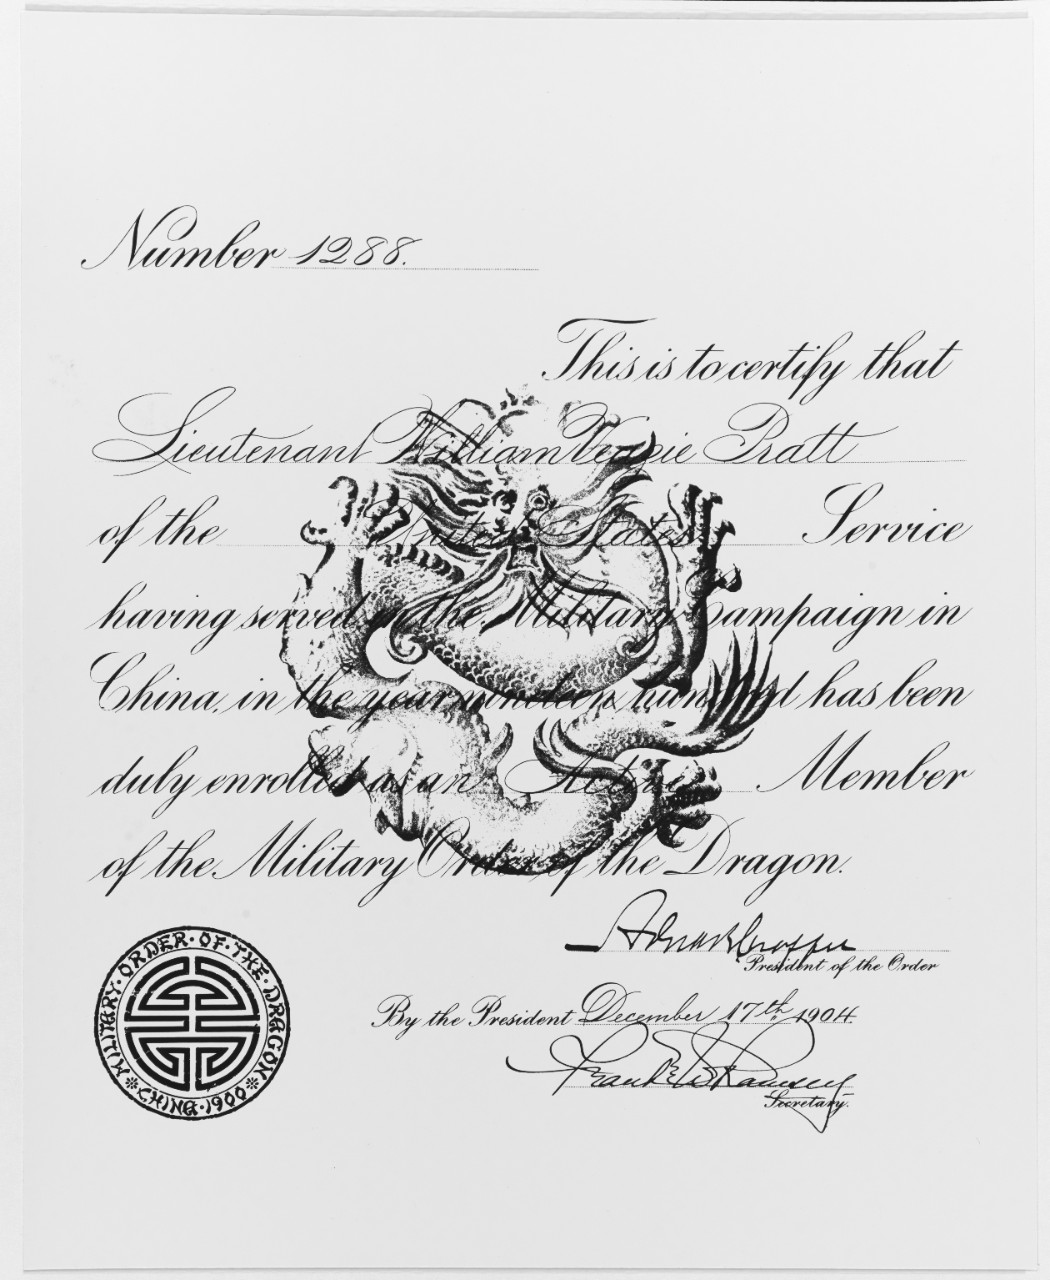 Certificate presented to Lieutenant William V. Pratt, USN